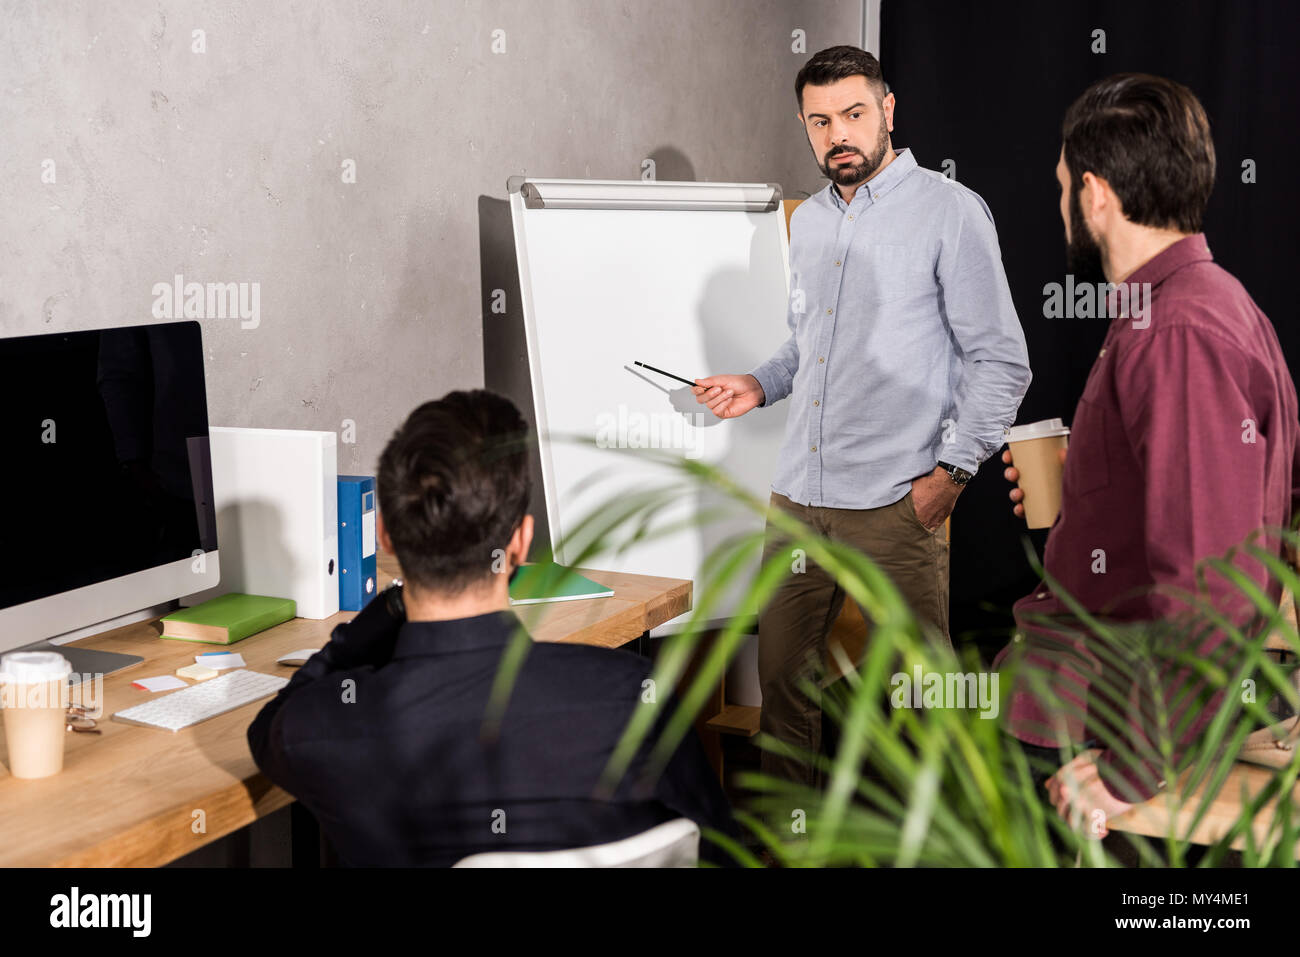 businessman describing something to colleagues at meeting in office - Stock Image